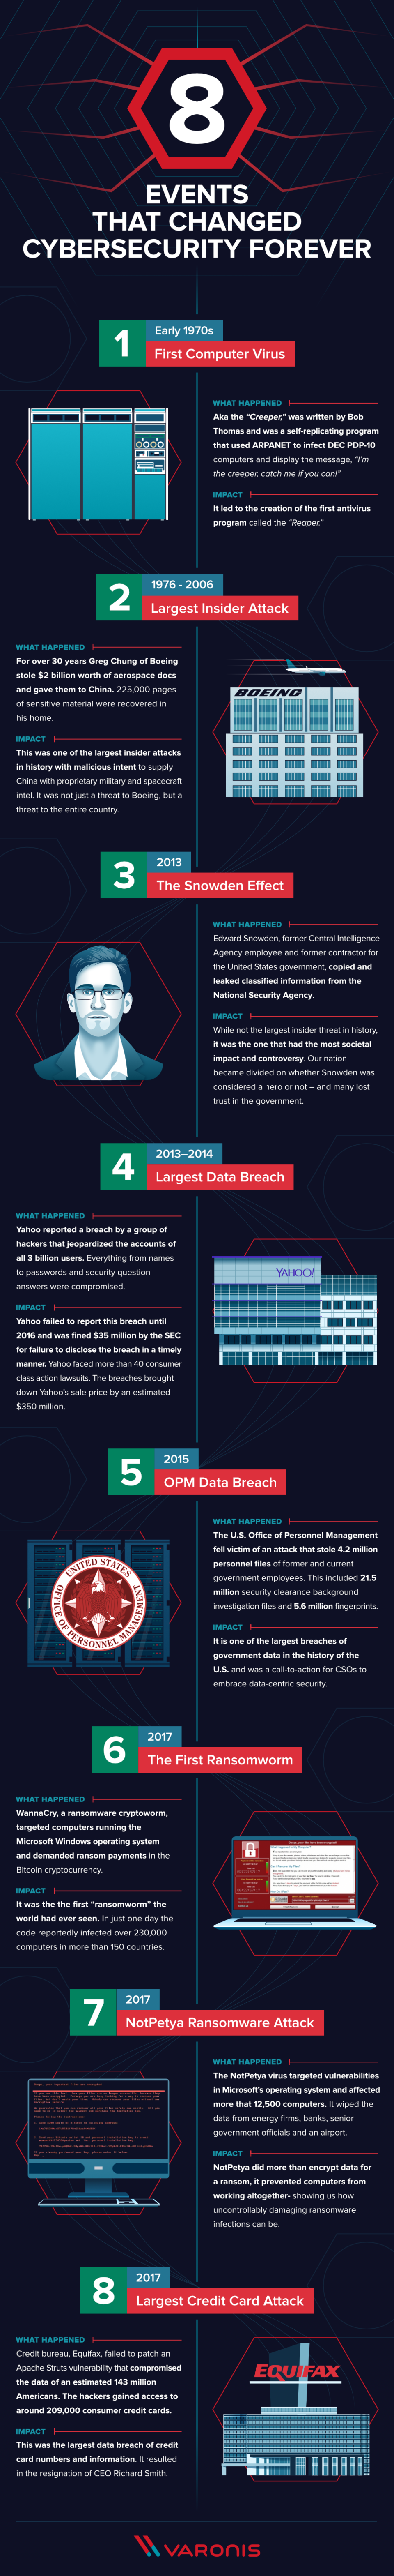 8 Events That Changed Cybersecurity Forever #infographic